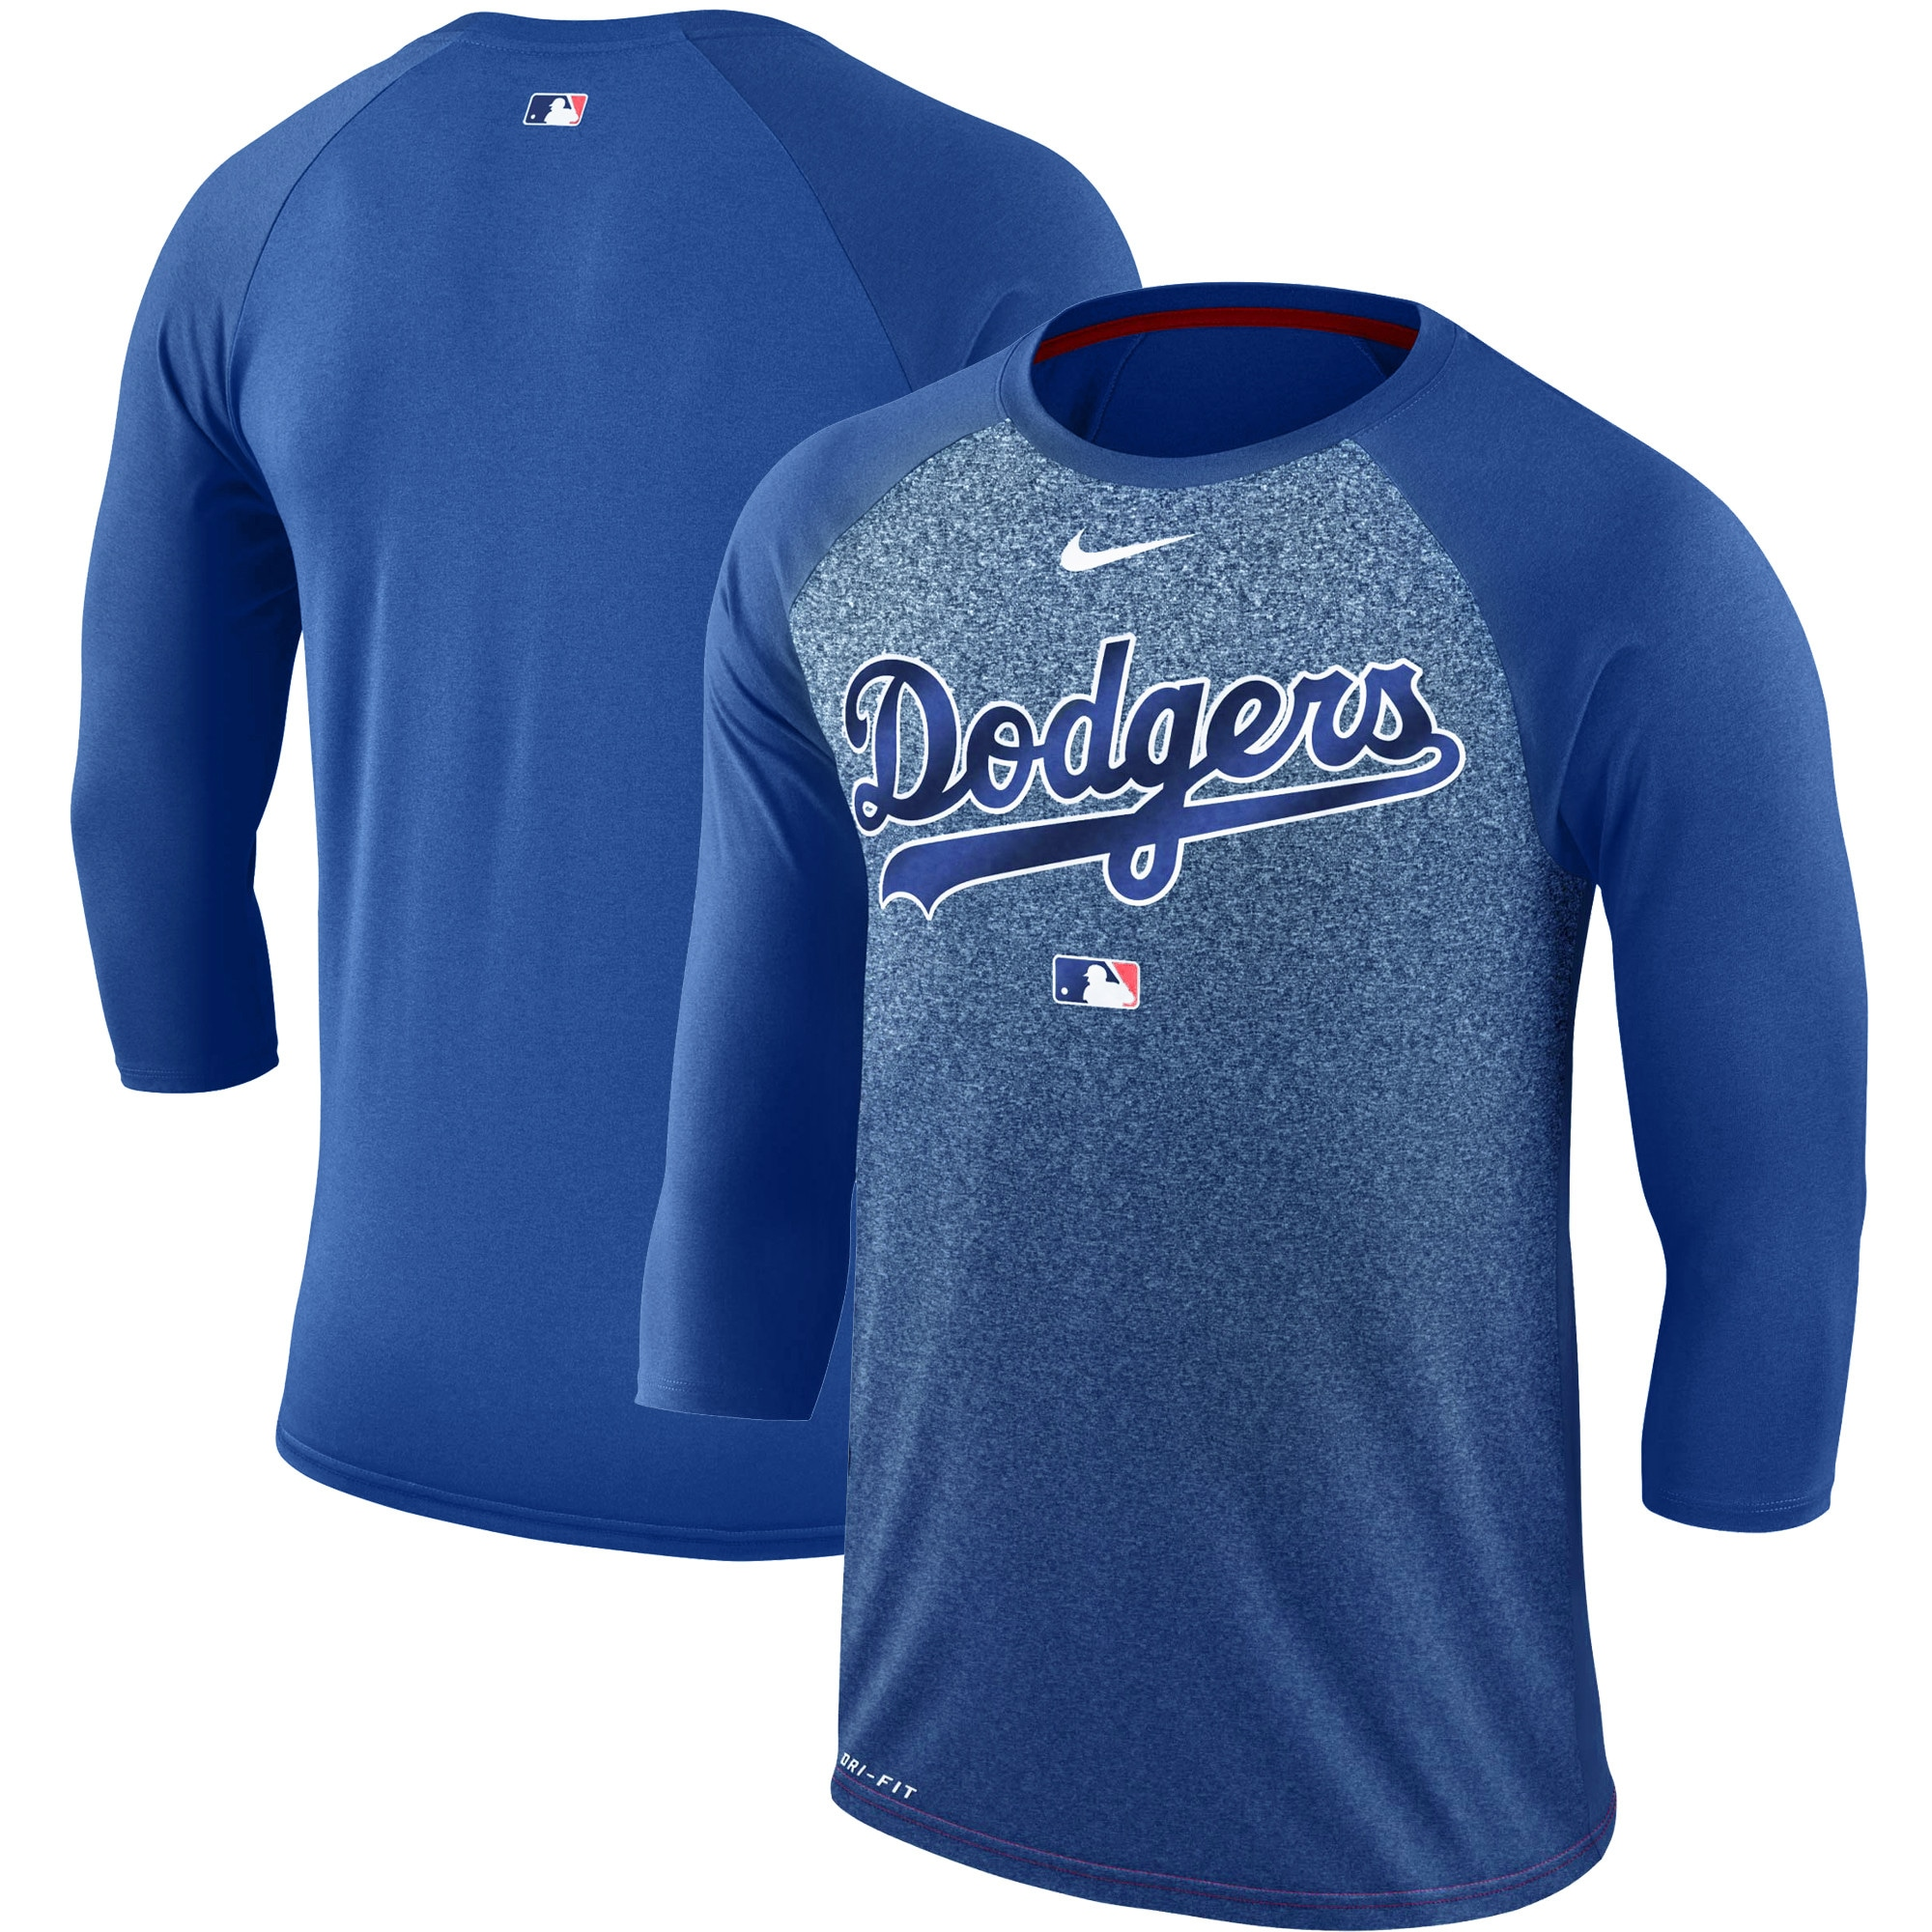 Los Angeles Dodgers Nike Authentic Collection Legend 3/4-Sleeve Raglan Performance T-Shirt - Royal